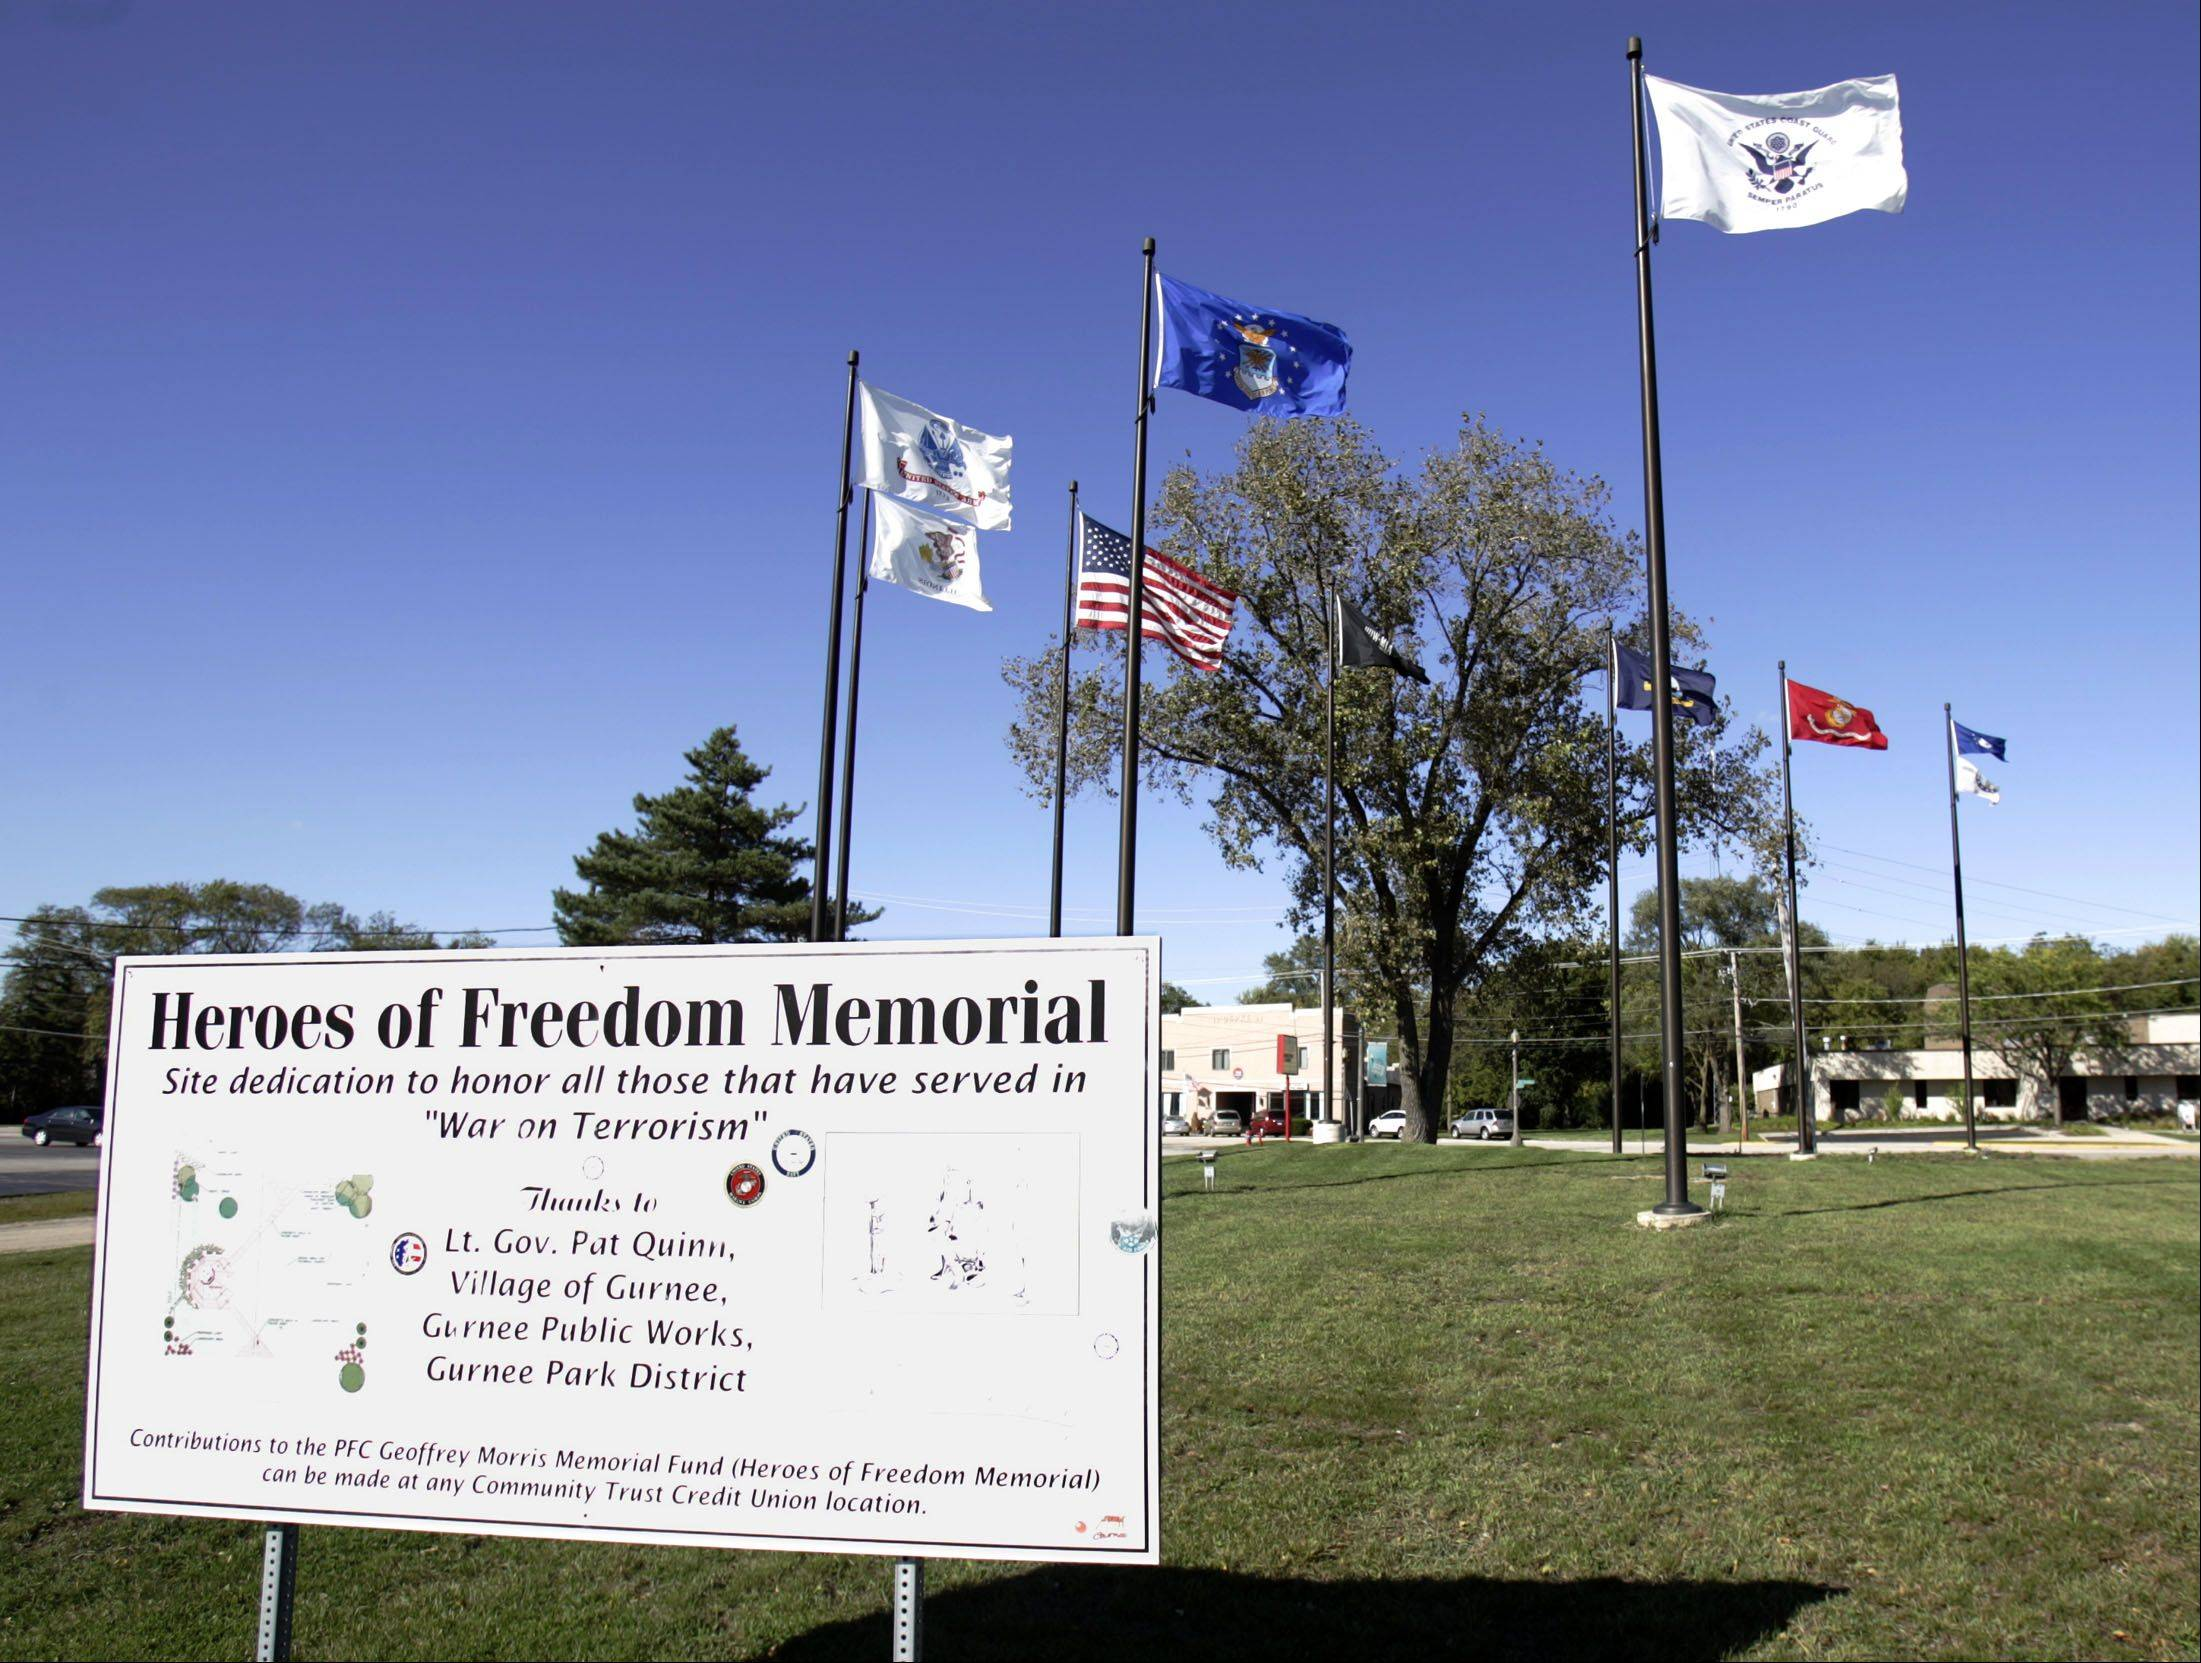 STEVE LUNDY/slundy@dailyherald.com, 2009Heros of Freedom Memorial on Old Grand Avenue as it looked in 2009.